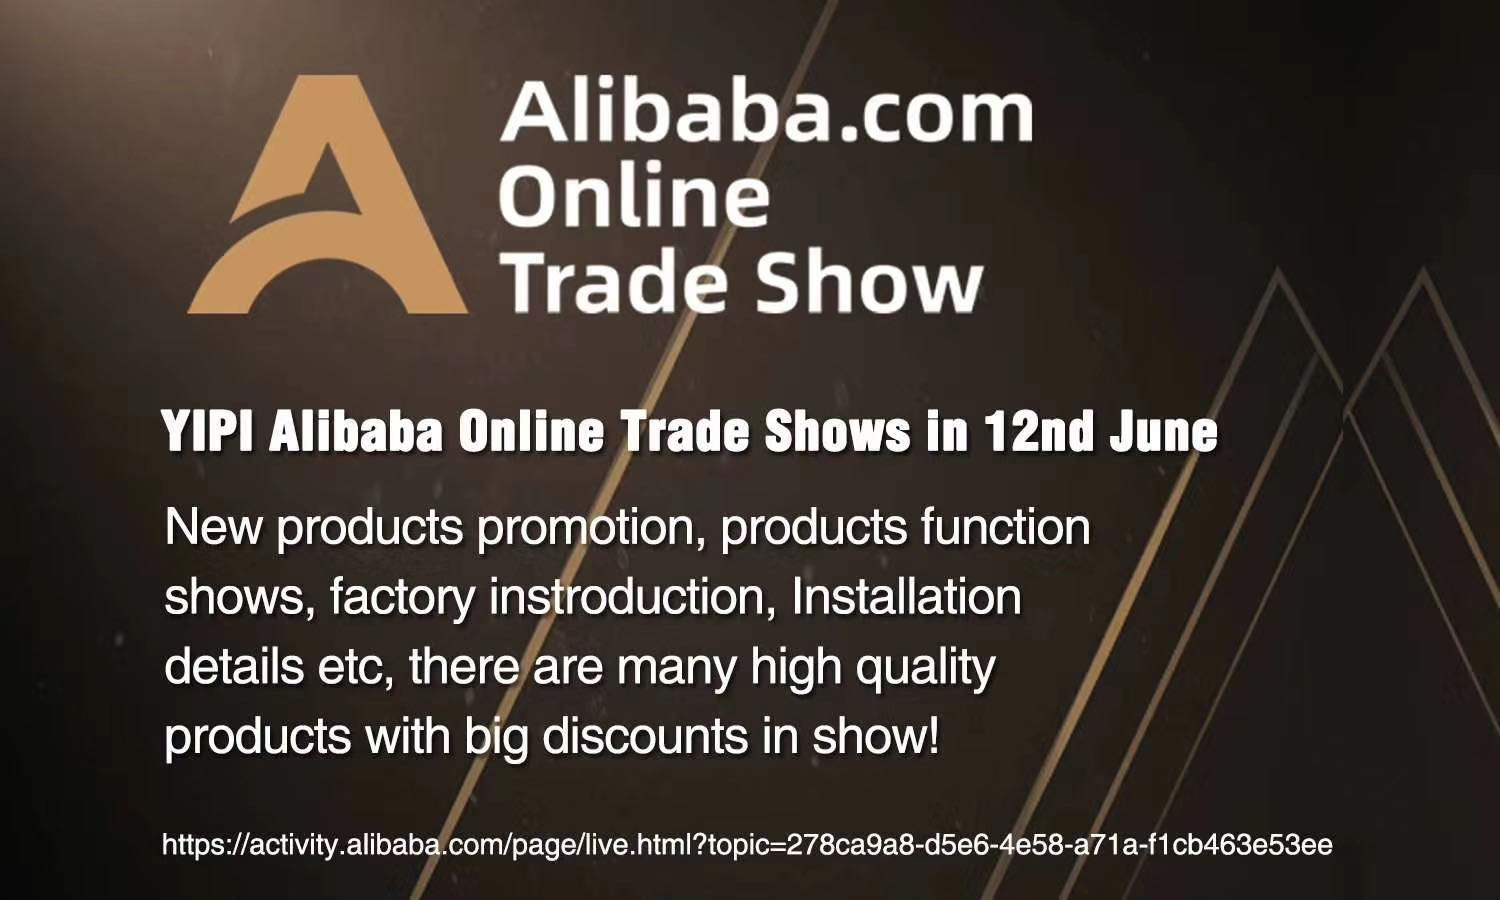 YIPI Alibaba Online Trade Shows